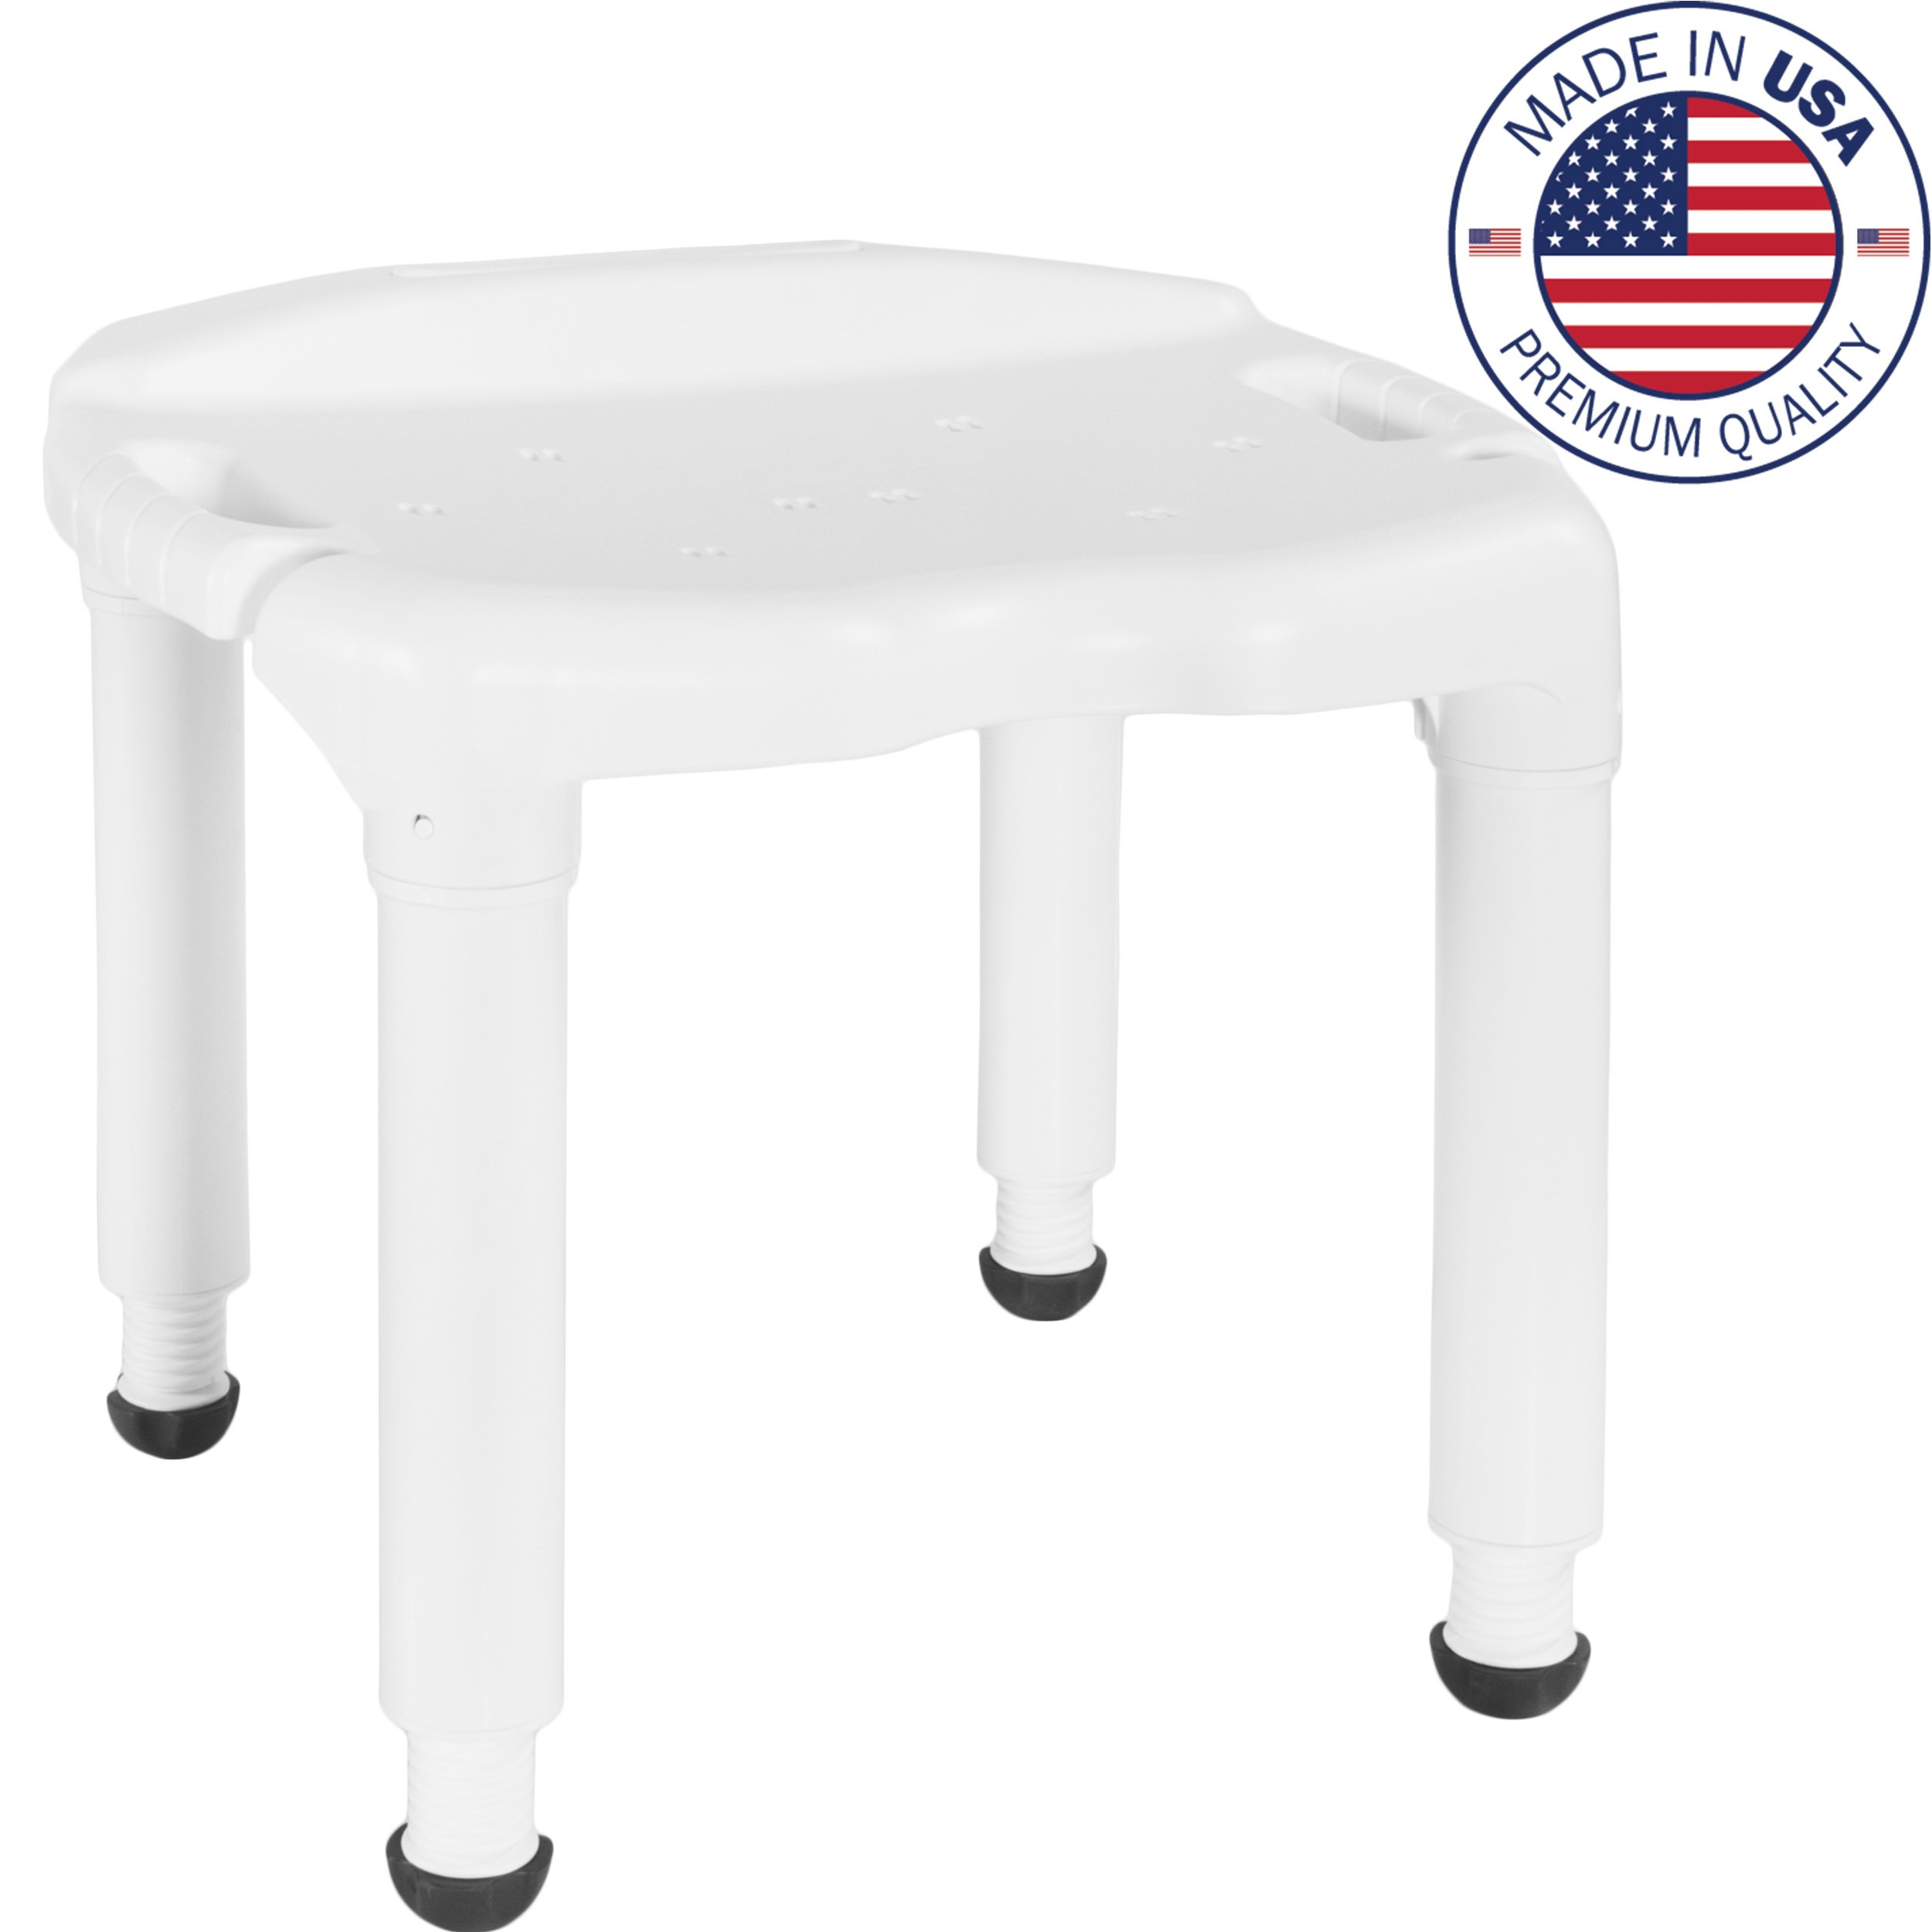 Medical Tool Free Assembly Bathtub Shower Chair Seat and Bench